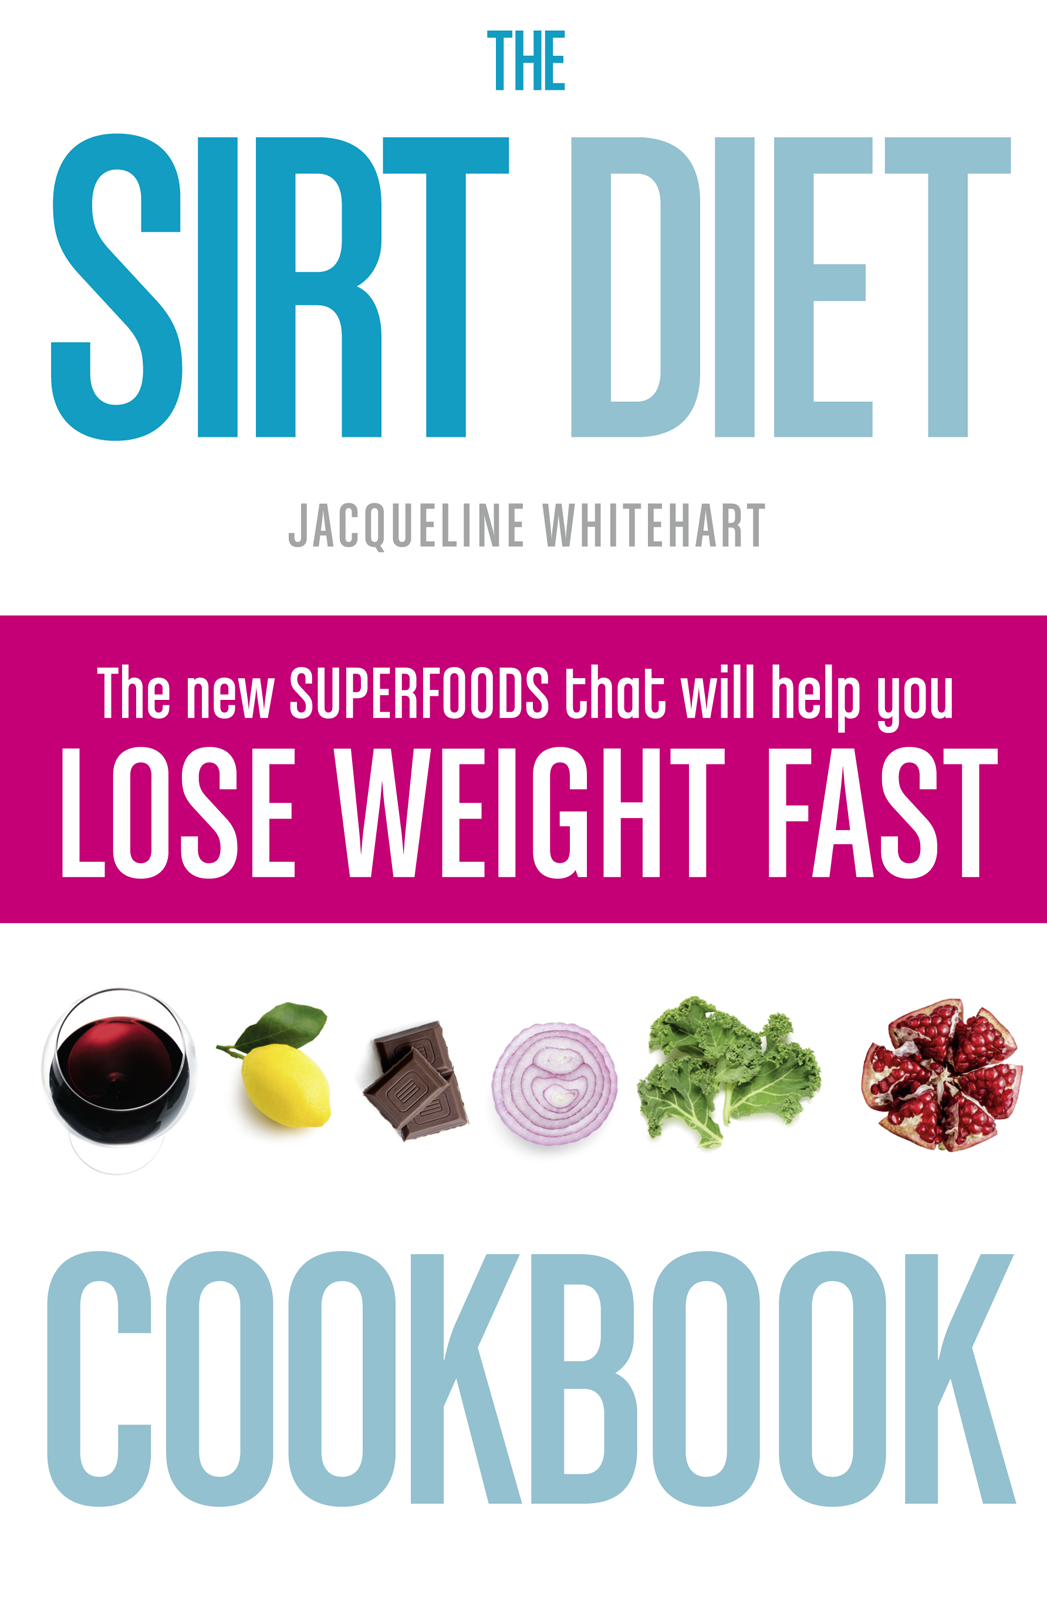 Jacqueline Whitehart The Sirt Diet Cookbook fish cookbook